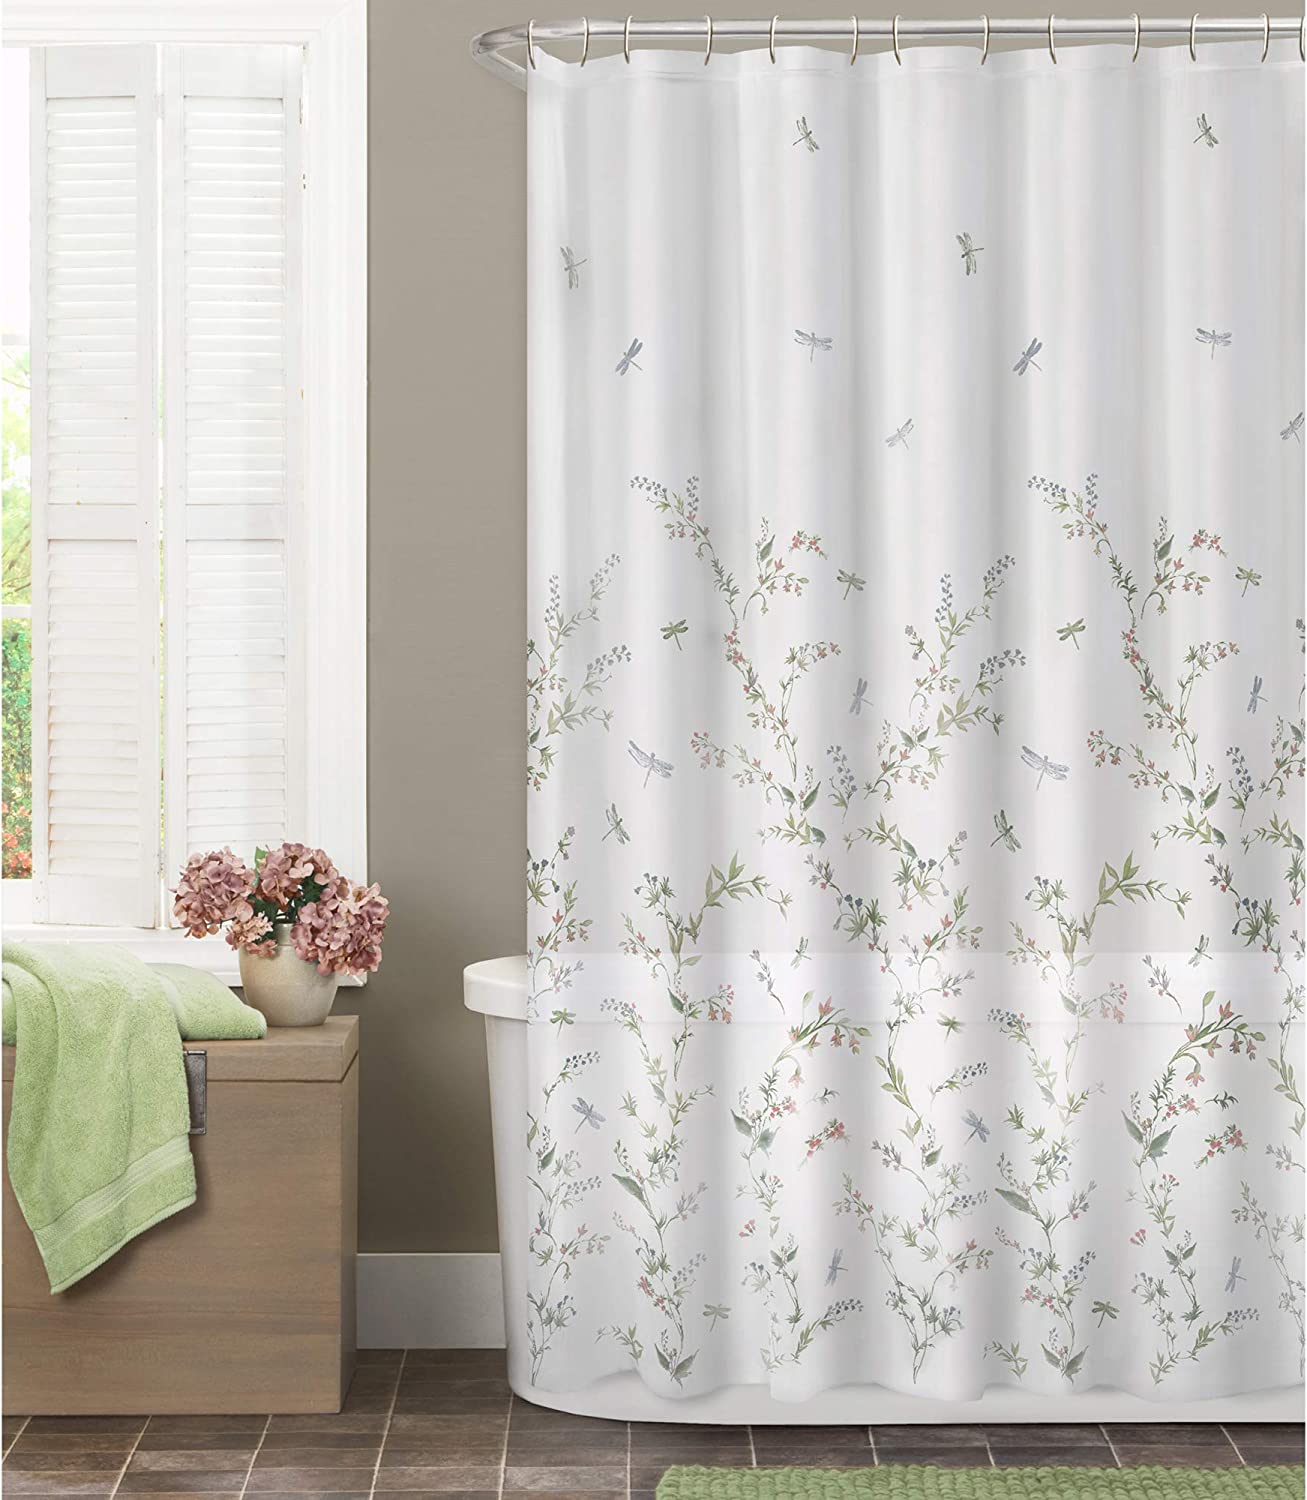 Amazon Com Maytex Dragonfly Garden Semi Sheer Fabric Shower Curtain 70x72 Inches Multi Home Kitchen